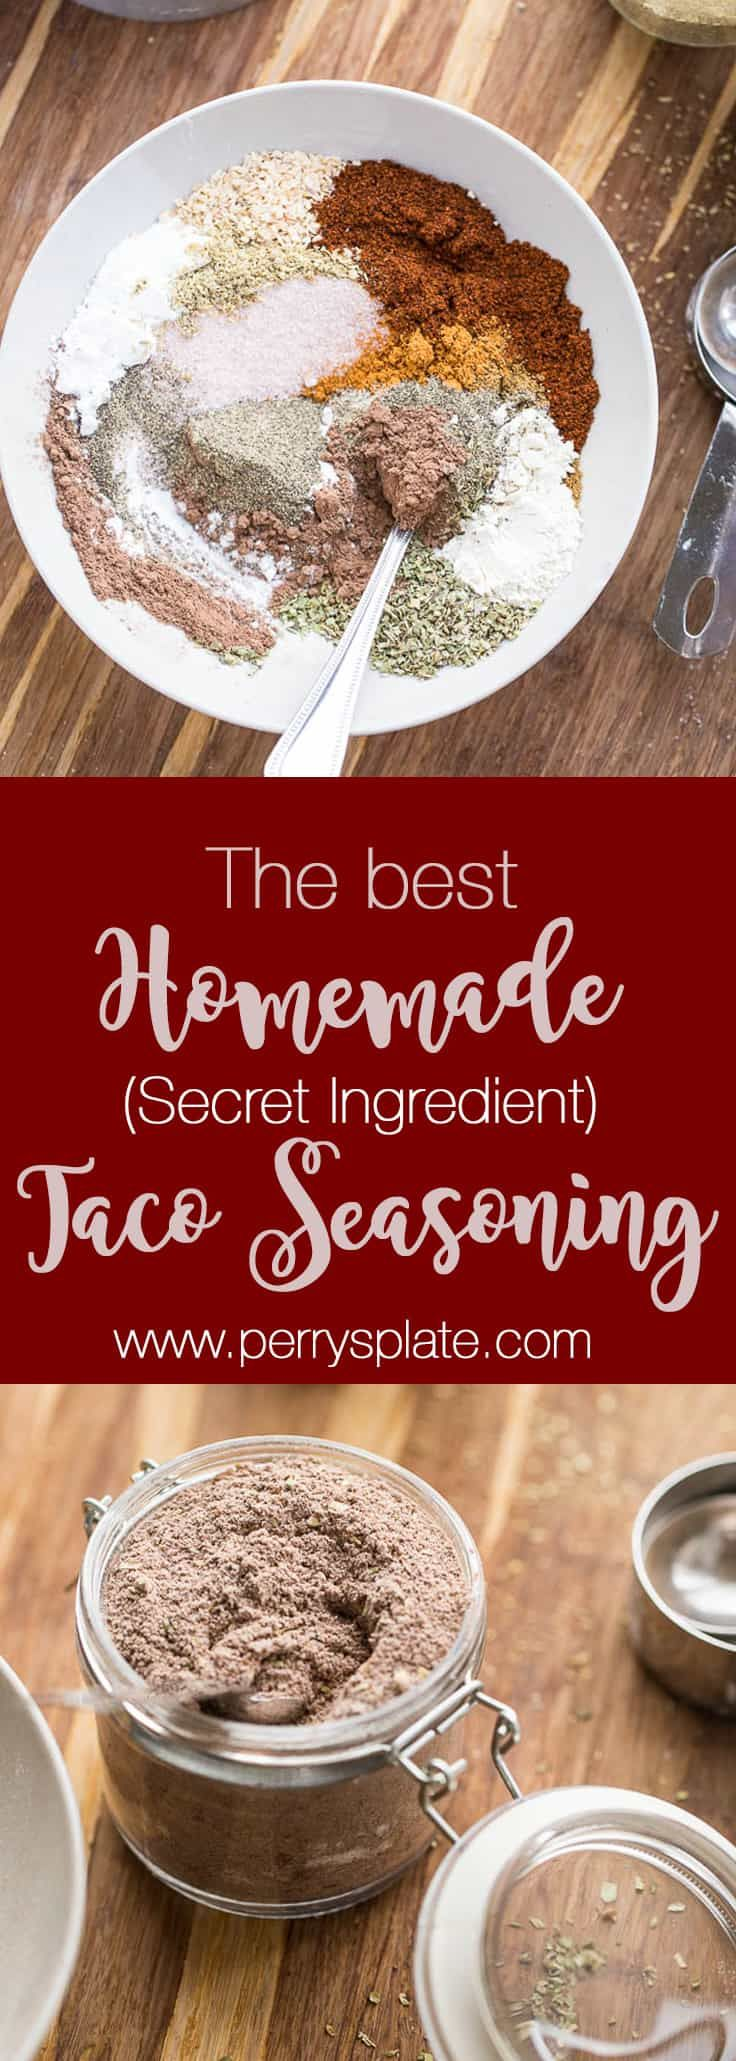 The Best Homemade Taco Seasoning. (with a SECRET ingredient!) - Perry's Plate